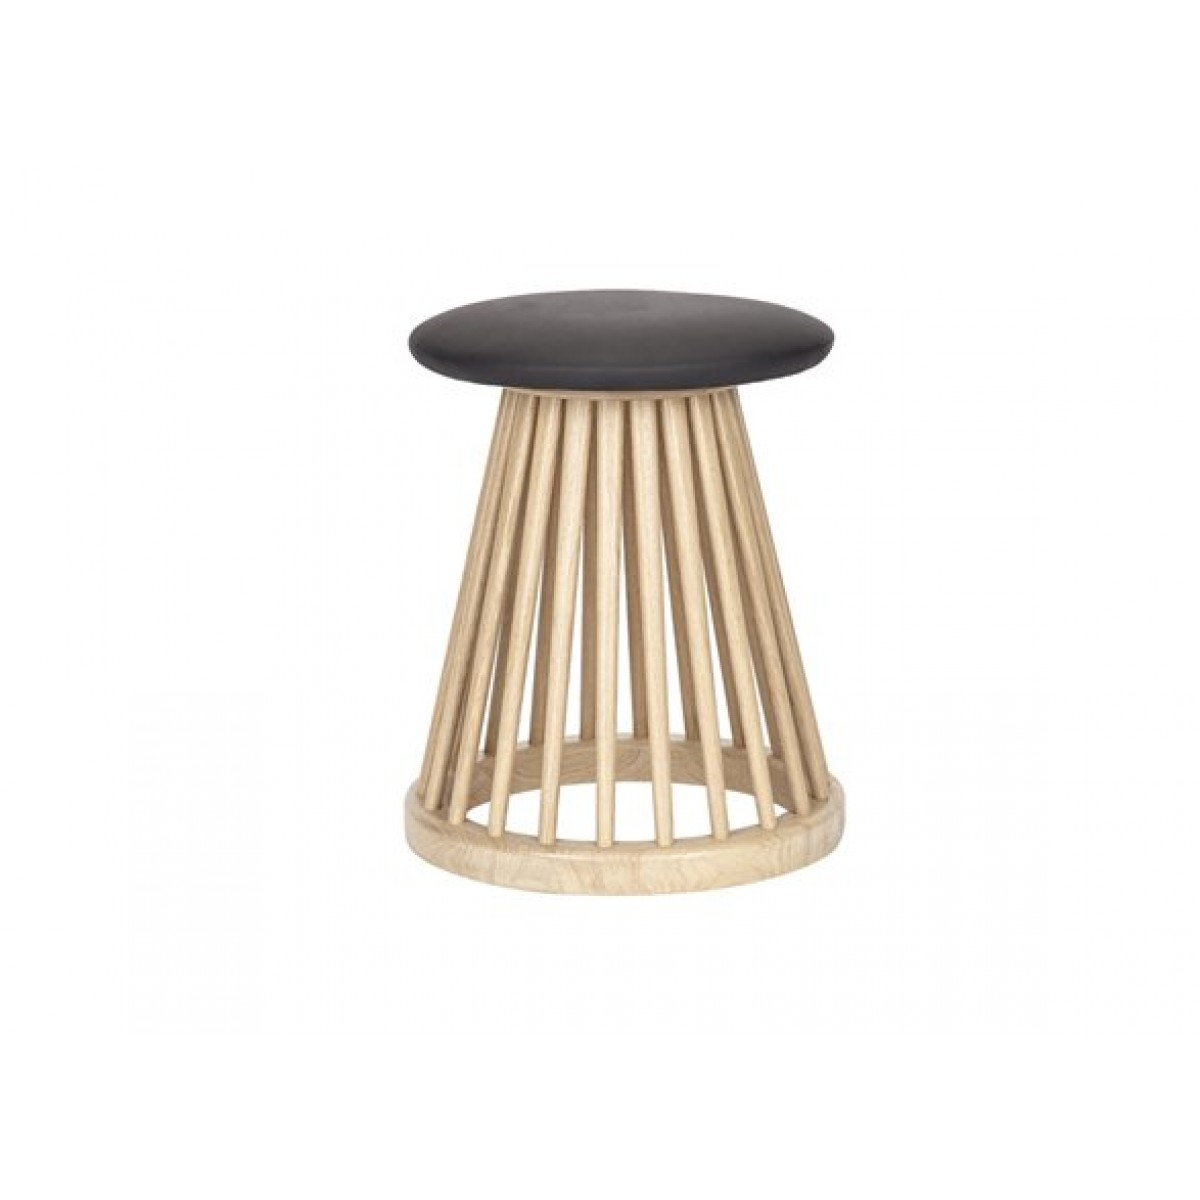 Hocker Tom Dixon-design hocker